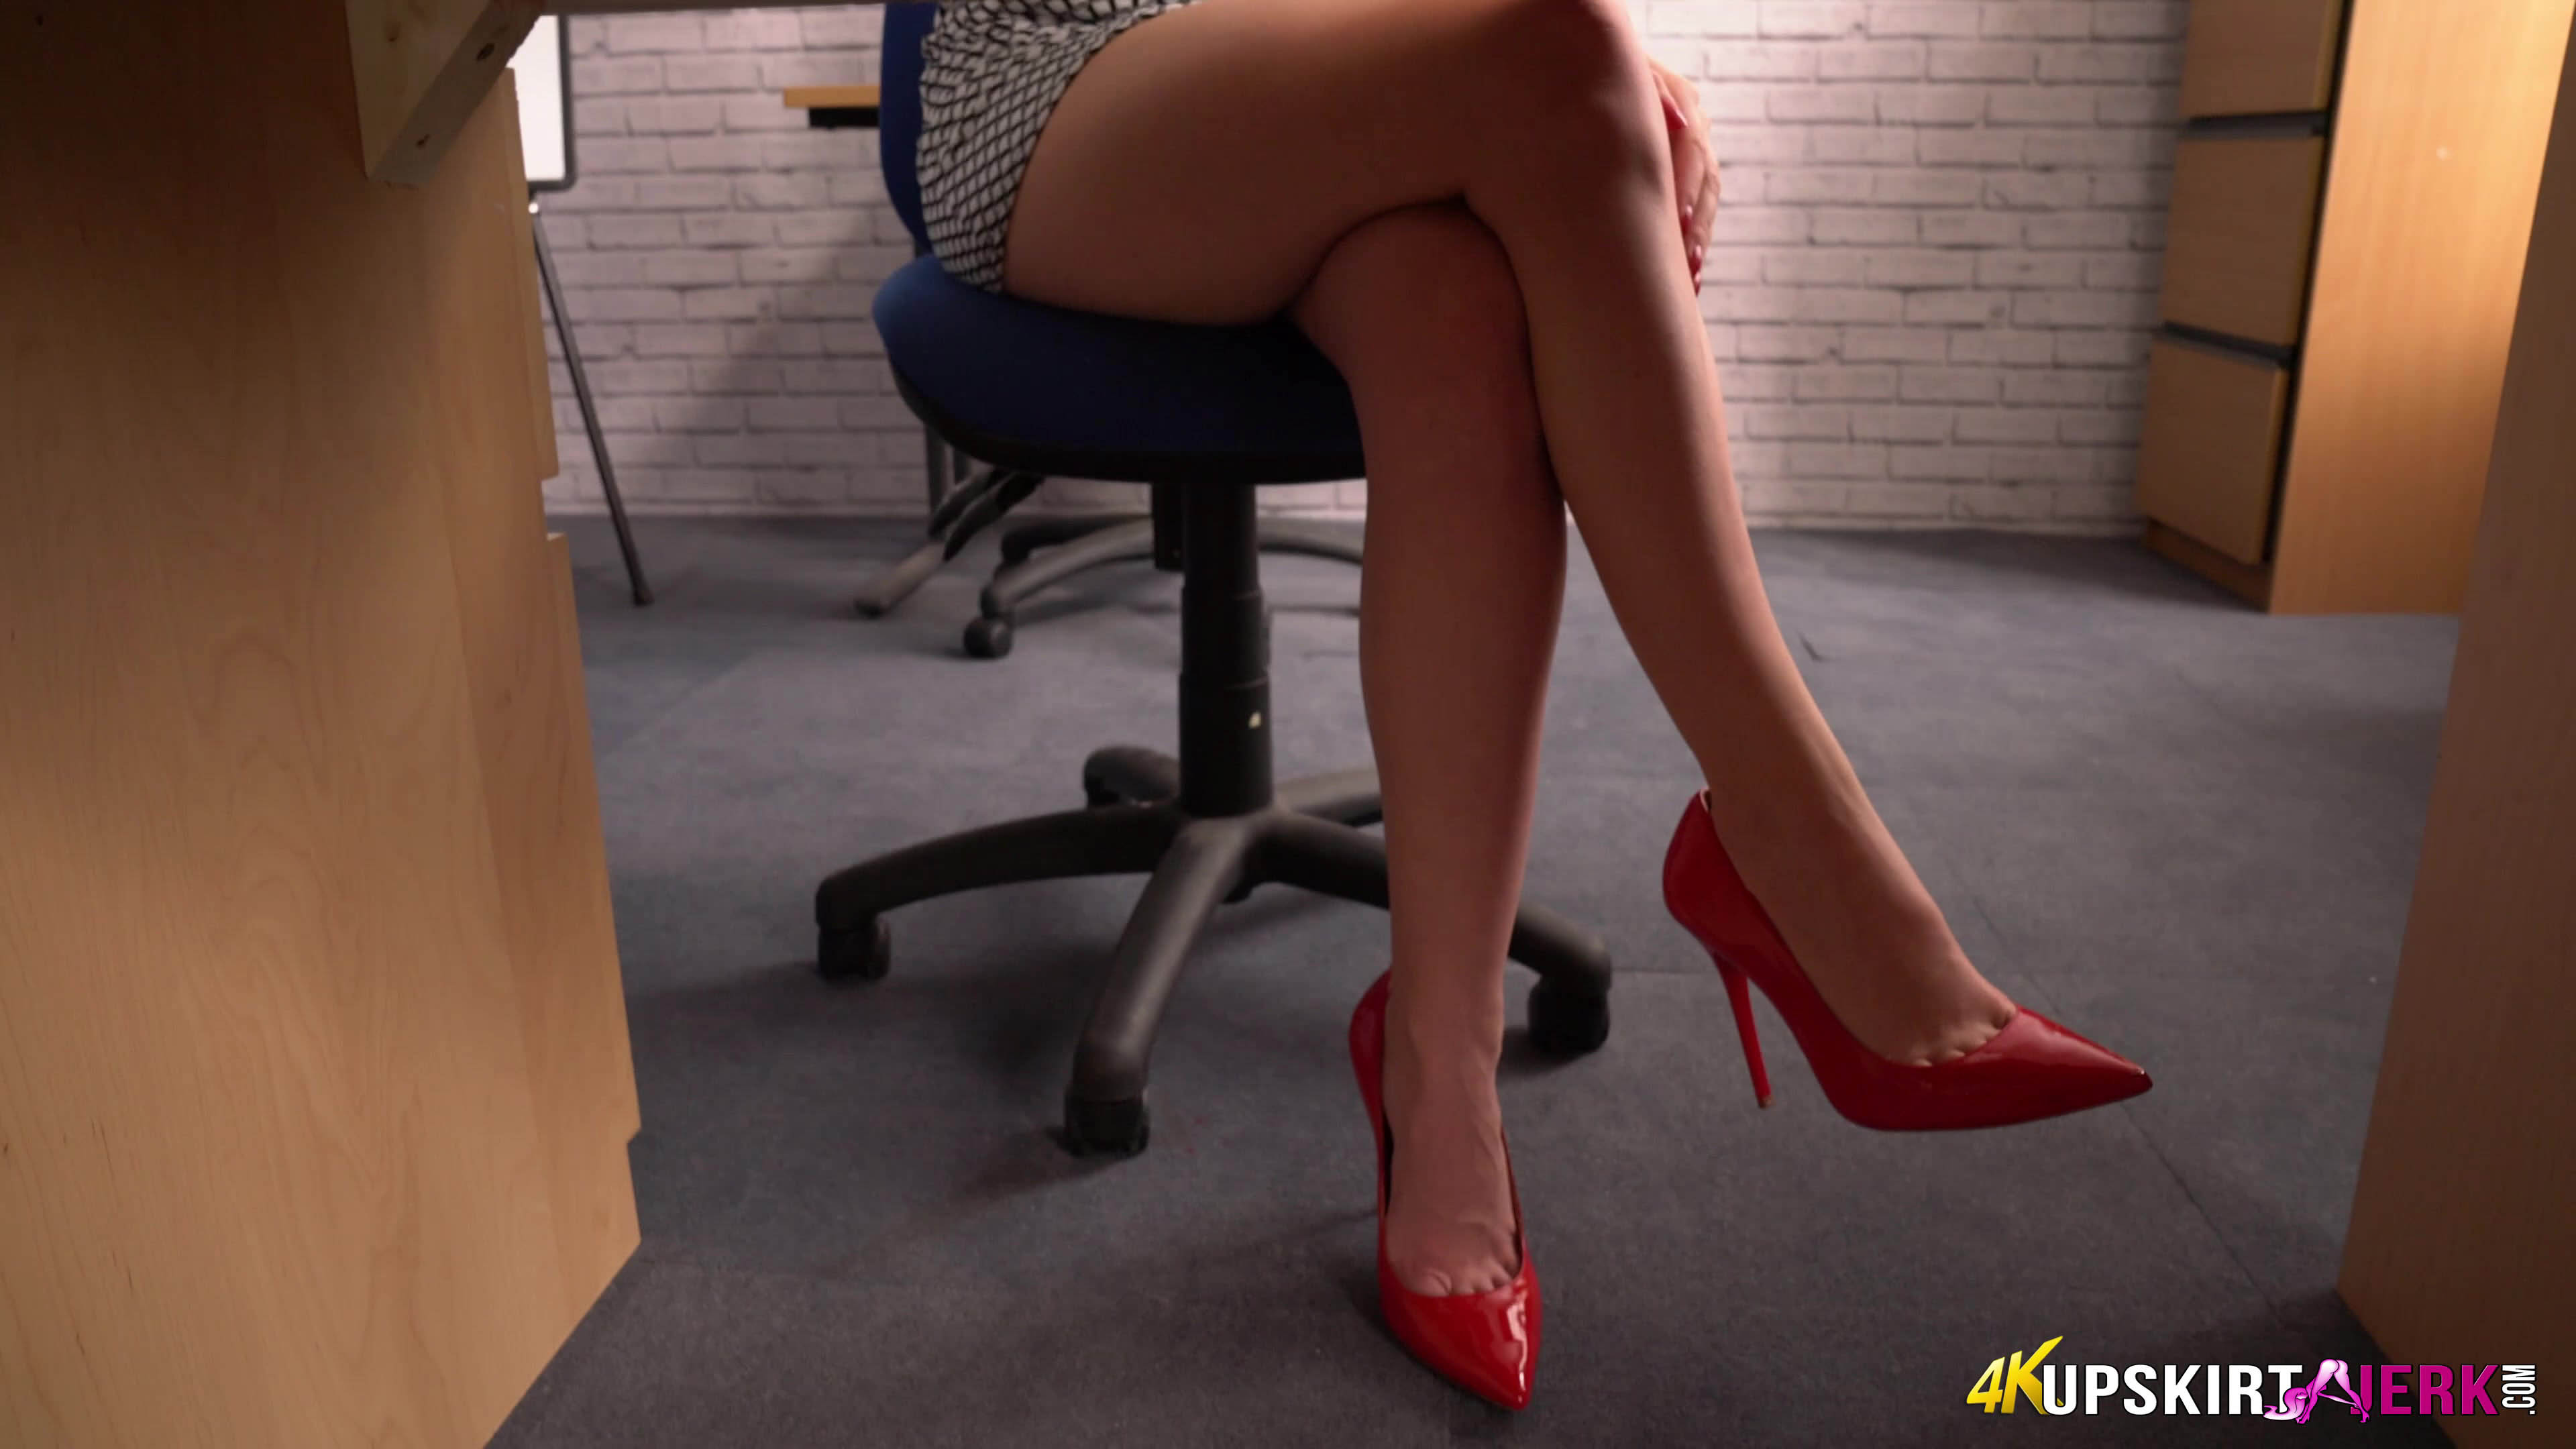 Upskirt jerk – boss you are starring at my panties, dont you notice ? #6